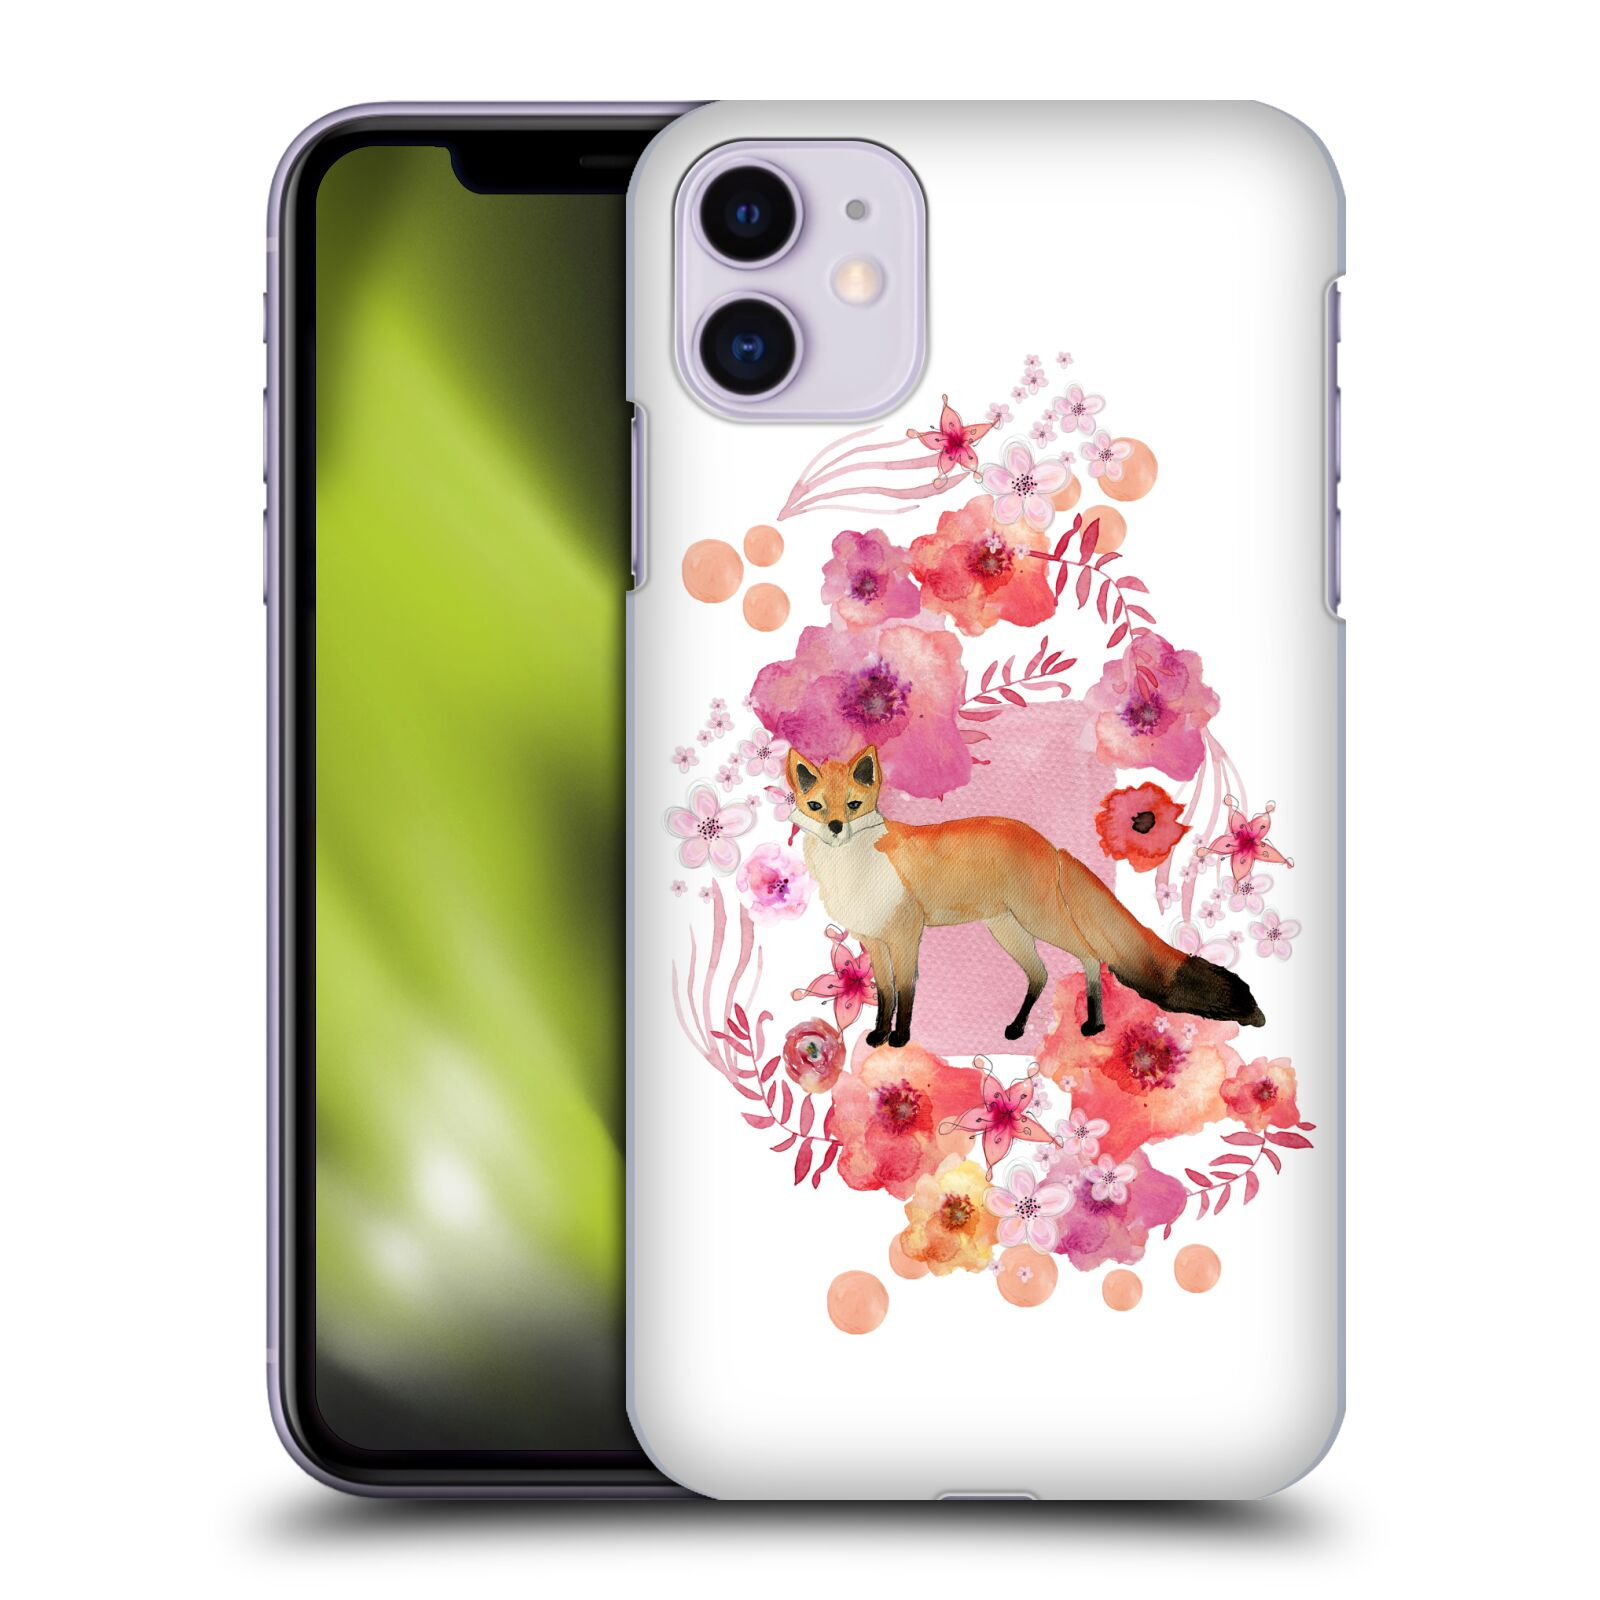 Official Monika Strigel Animals And Flowers Fox Case for Apple iPhone 11